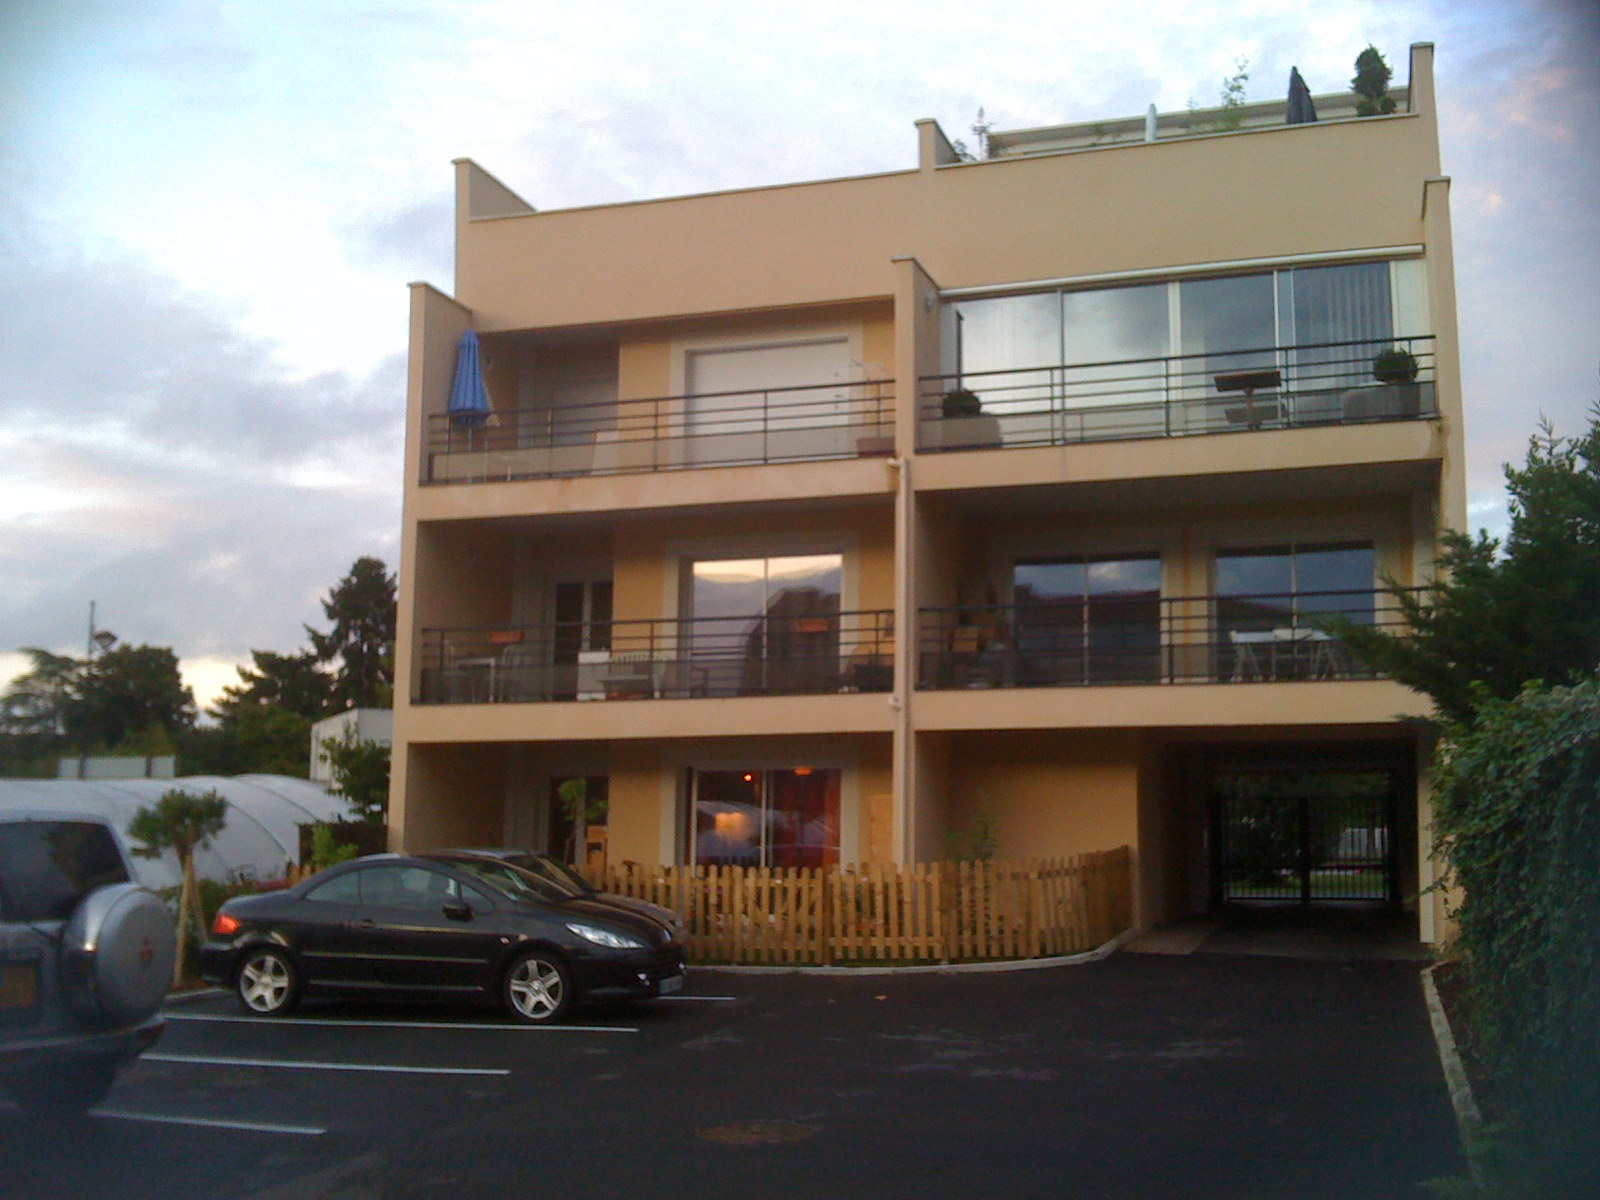 Appartement à Meyzieu - La villa Fusier - Meyzieu centre